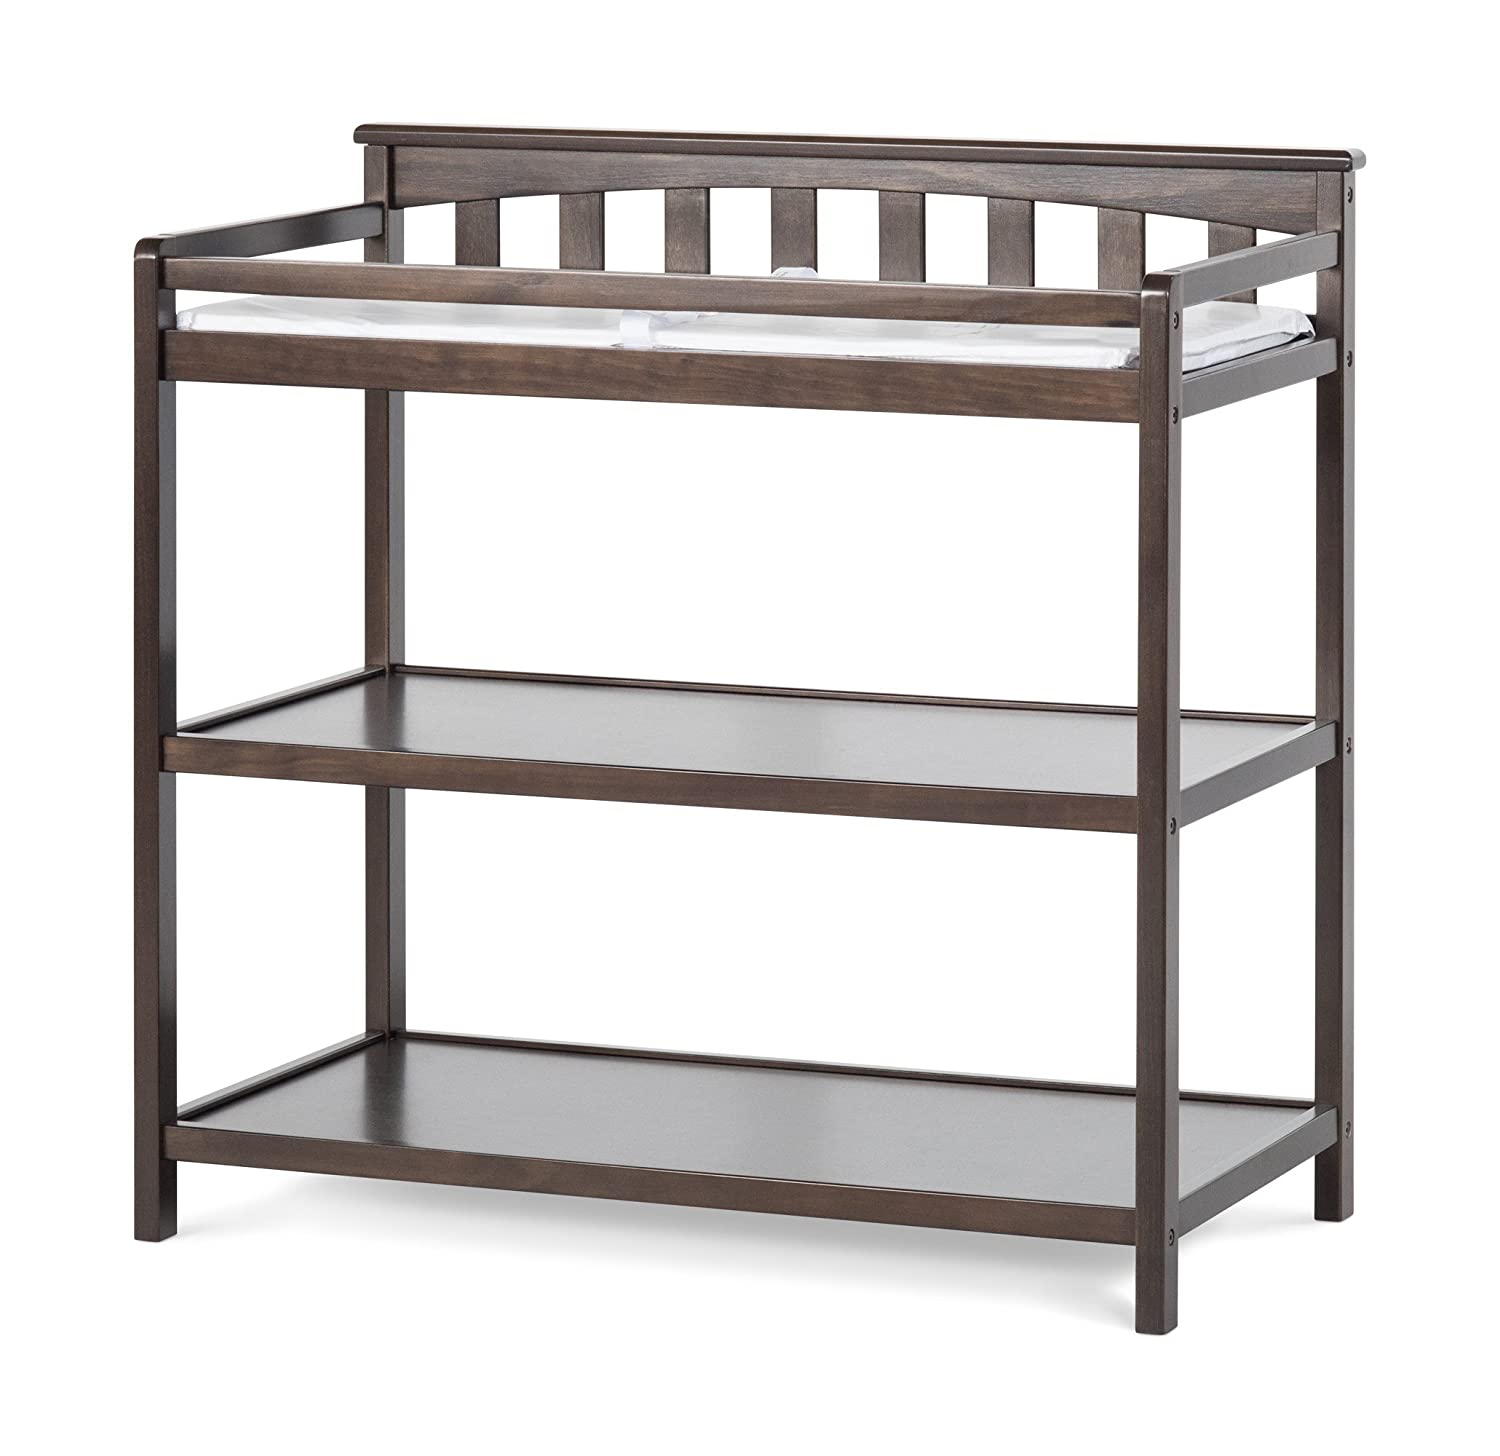 Amazon.com : Child Craft Flat Top Changing Table With Pad, Cool Gray : Baby